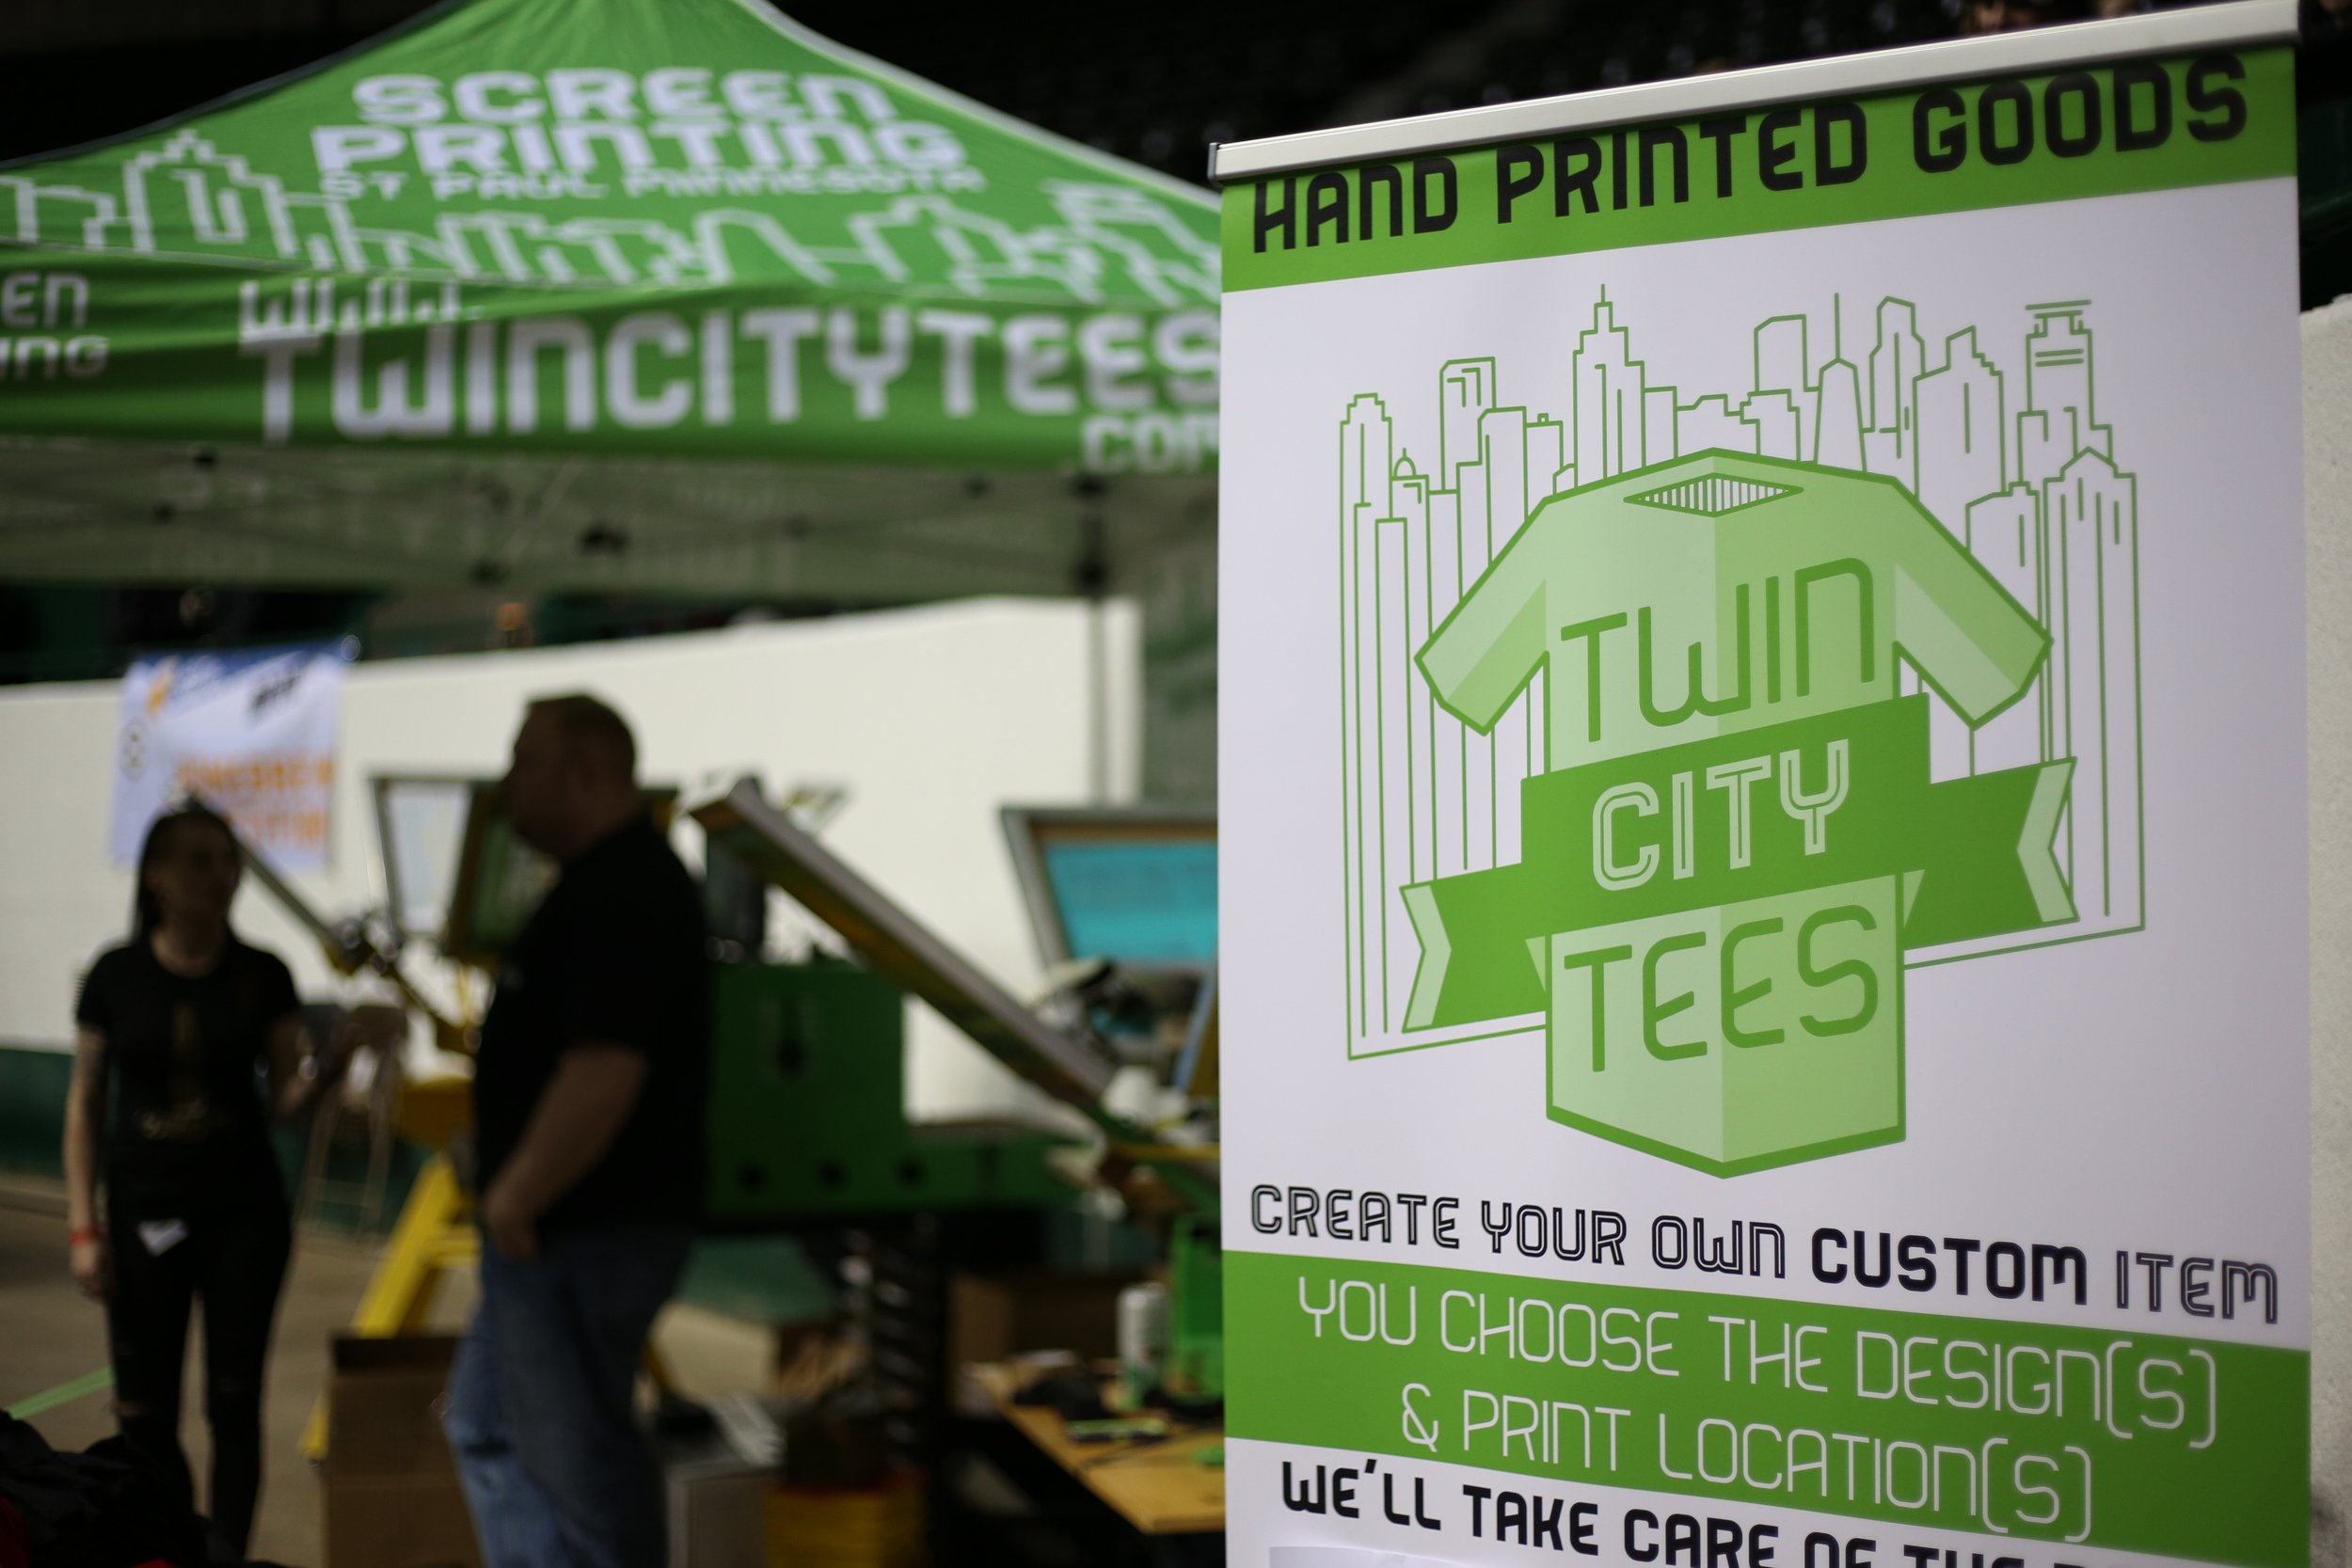 Twin-City-Tees-on-site-printing-beer-dabbler-5.JPG